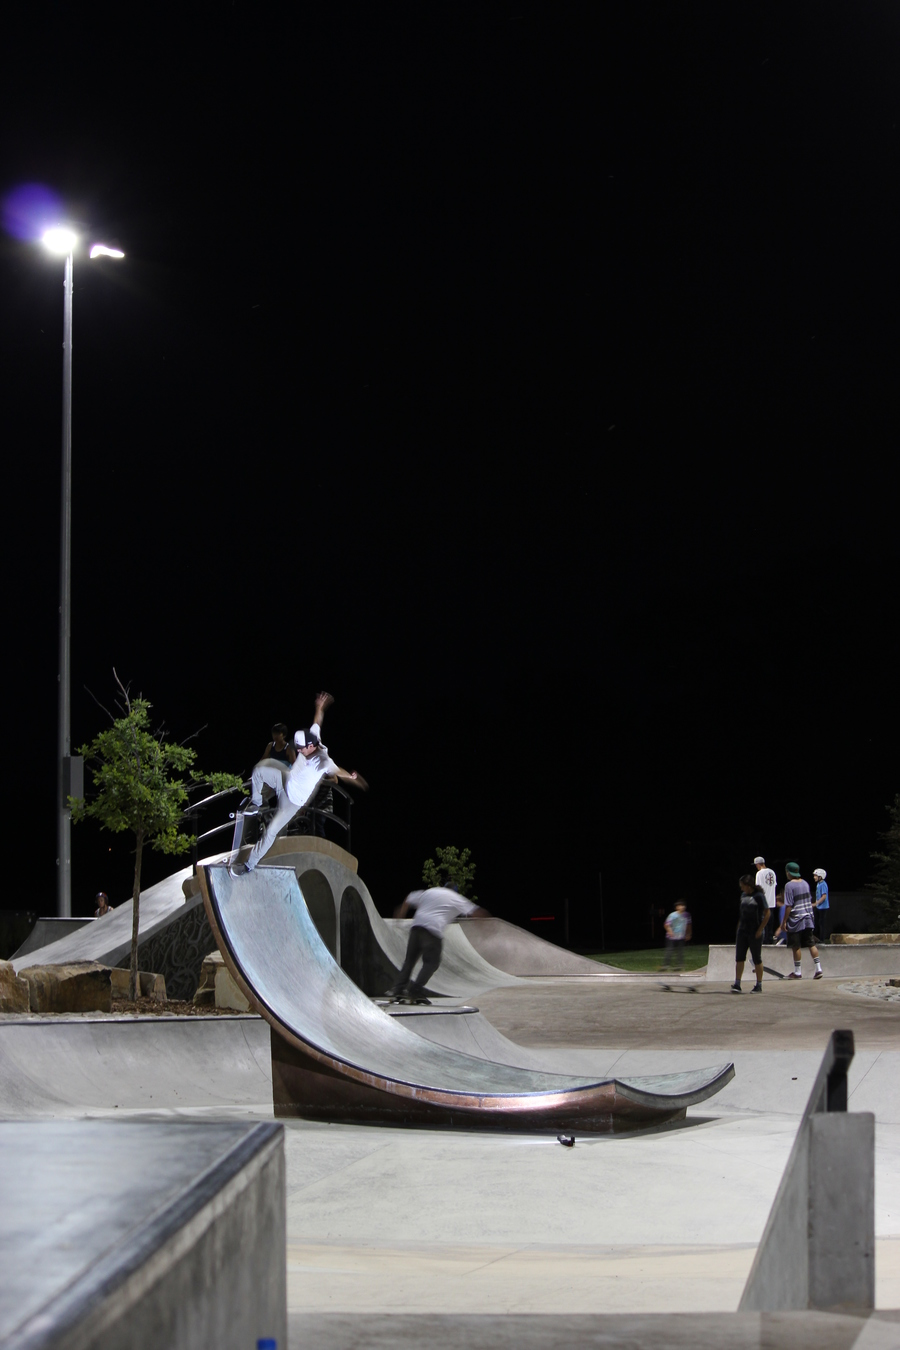 Colorado Skateboards team rider, Edward Sanchez. Blunt to fakie on the chip at Arvada skatepark